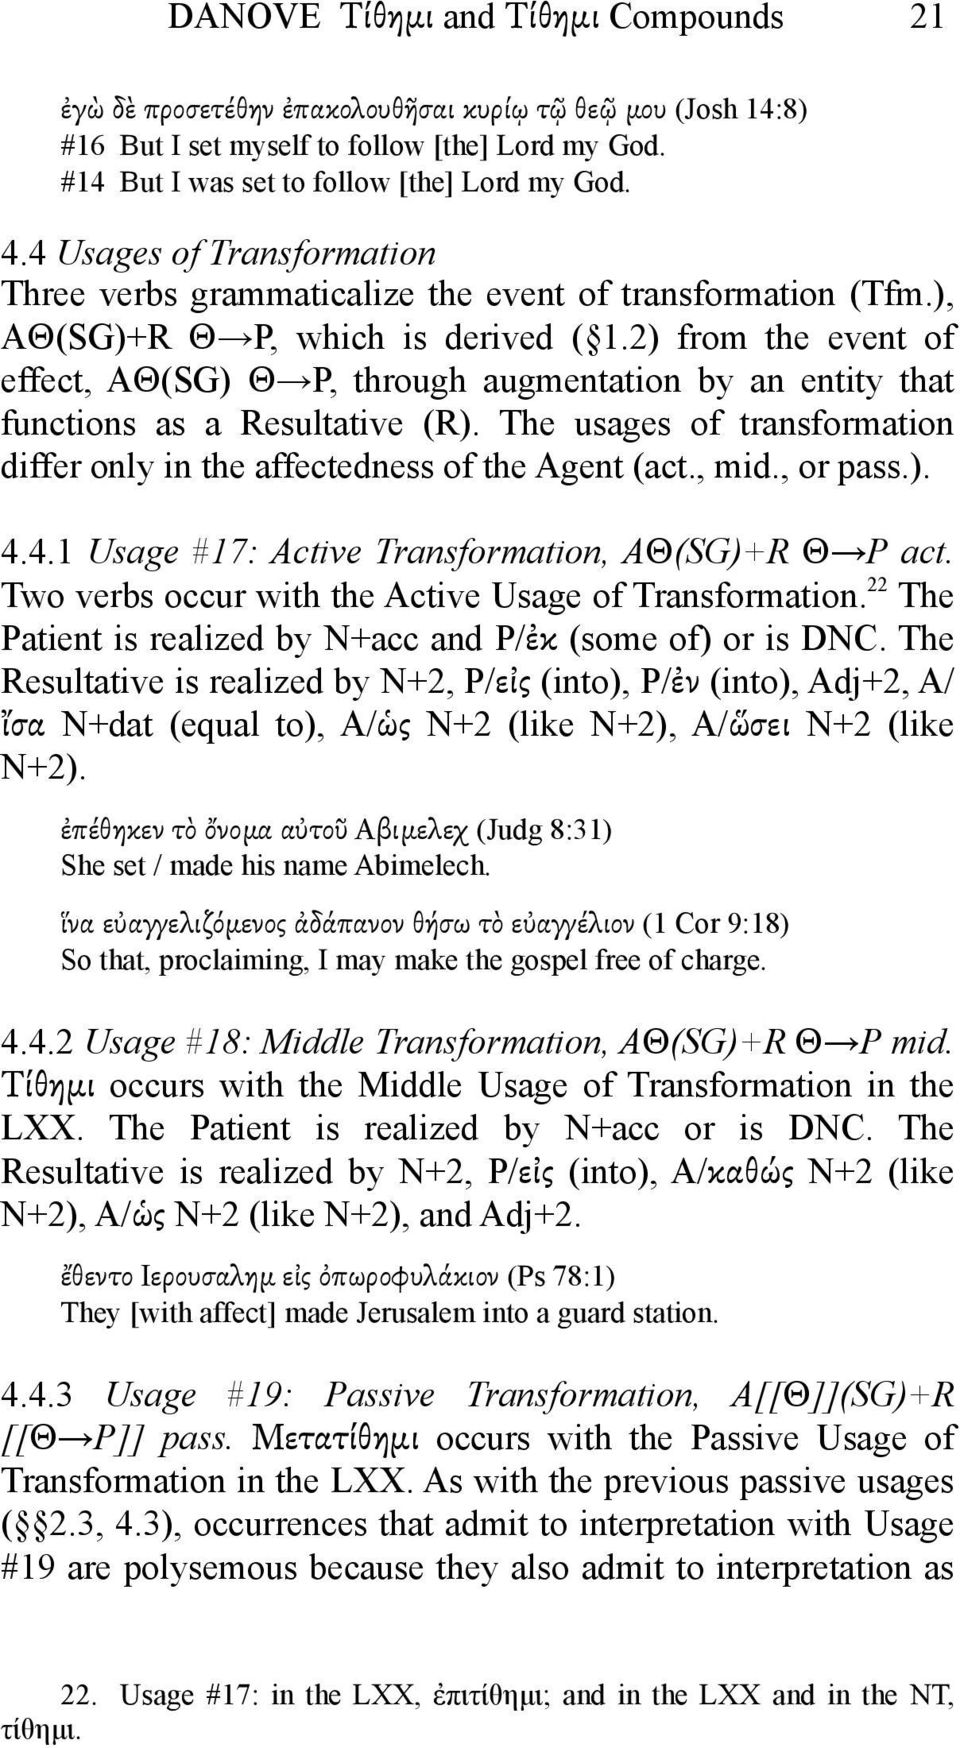 2) from the event of effect, AΘ(SG) Θ P, through augmentation by an entity that functions as a Resultative (R). The usages of transformation differ only in the affectedness of the Agent (act., mid.